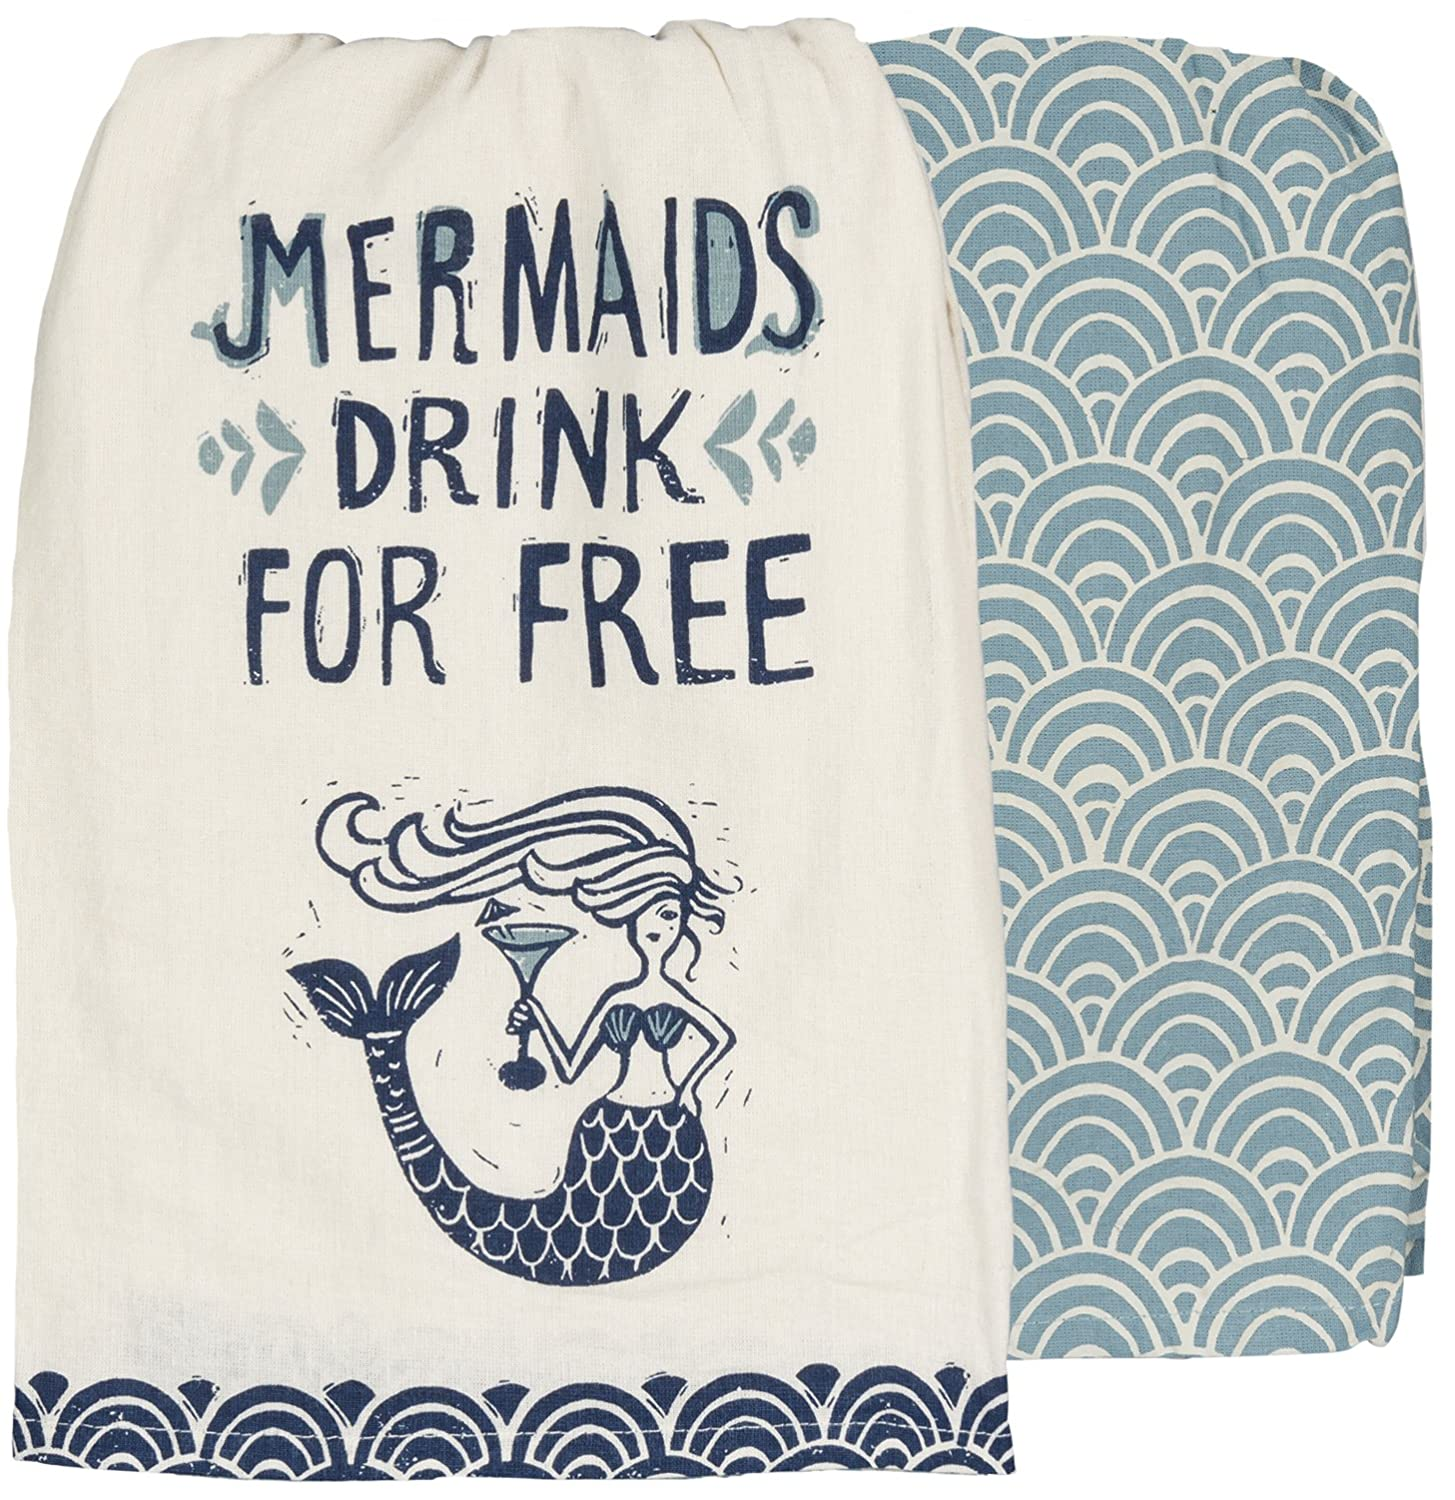 """Primitives by Kathy Mermaids Drink for Kitchen Towels Set of 2, Dish Towel with Mermaid Holding a Cocktail and a Coordinating Fish Scale Patterned Towel, 28"""" Square Dishtowels"""